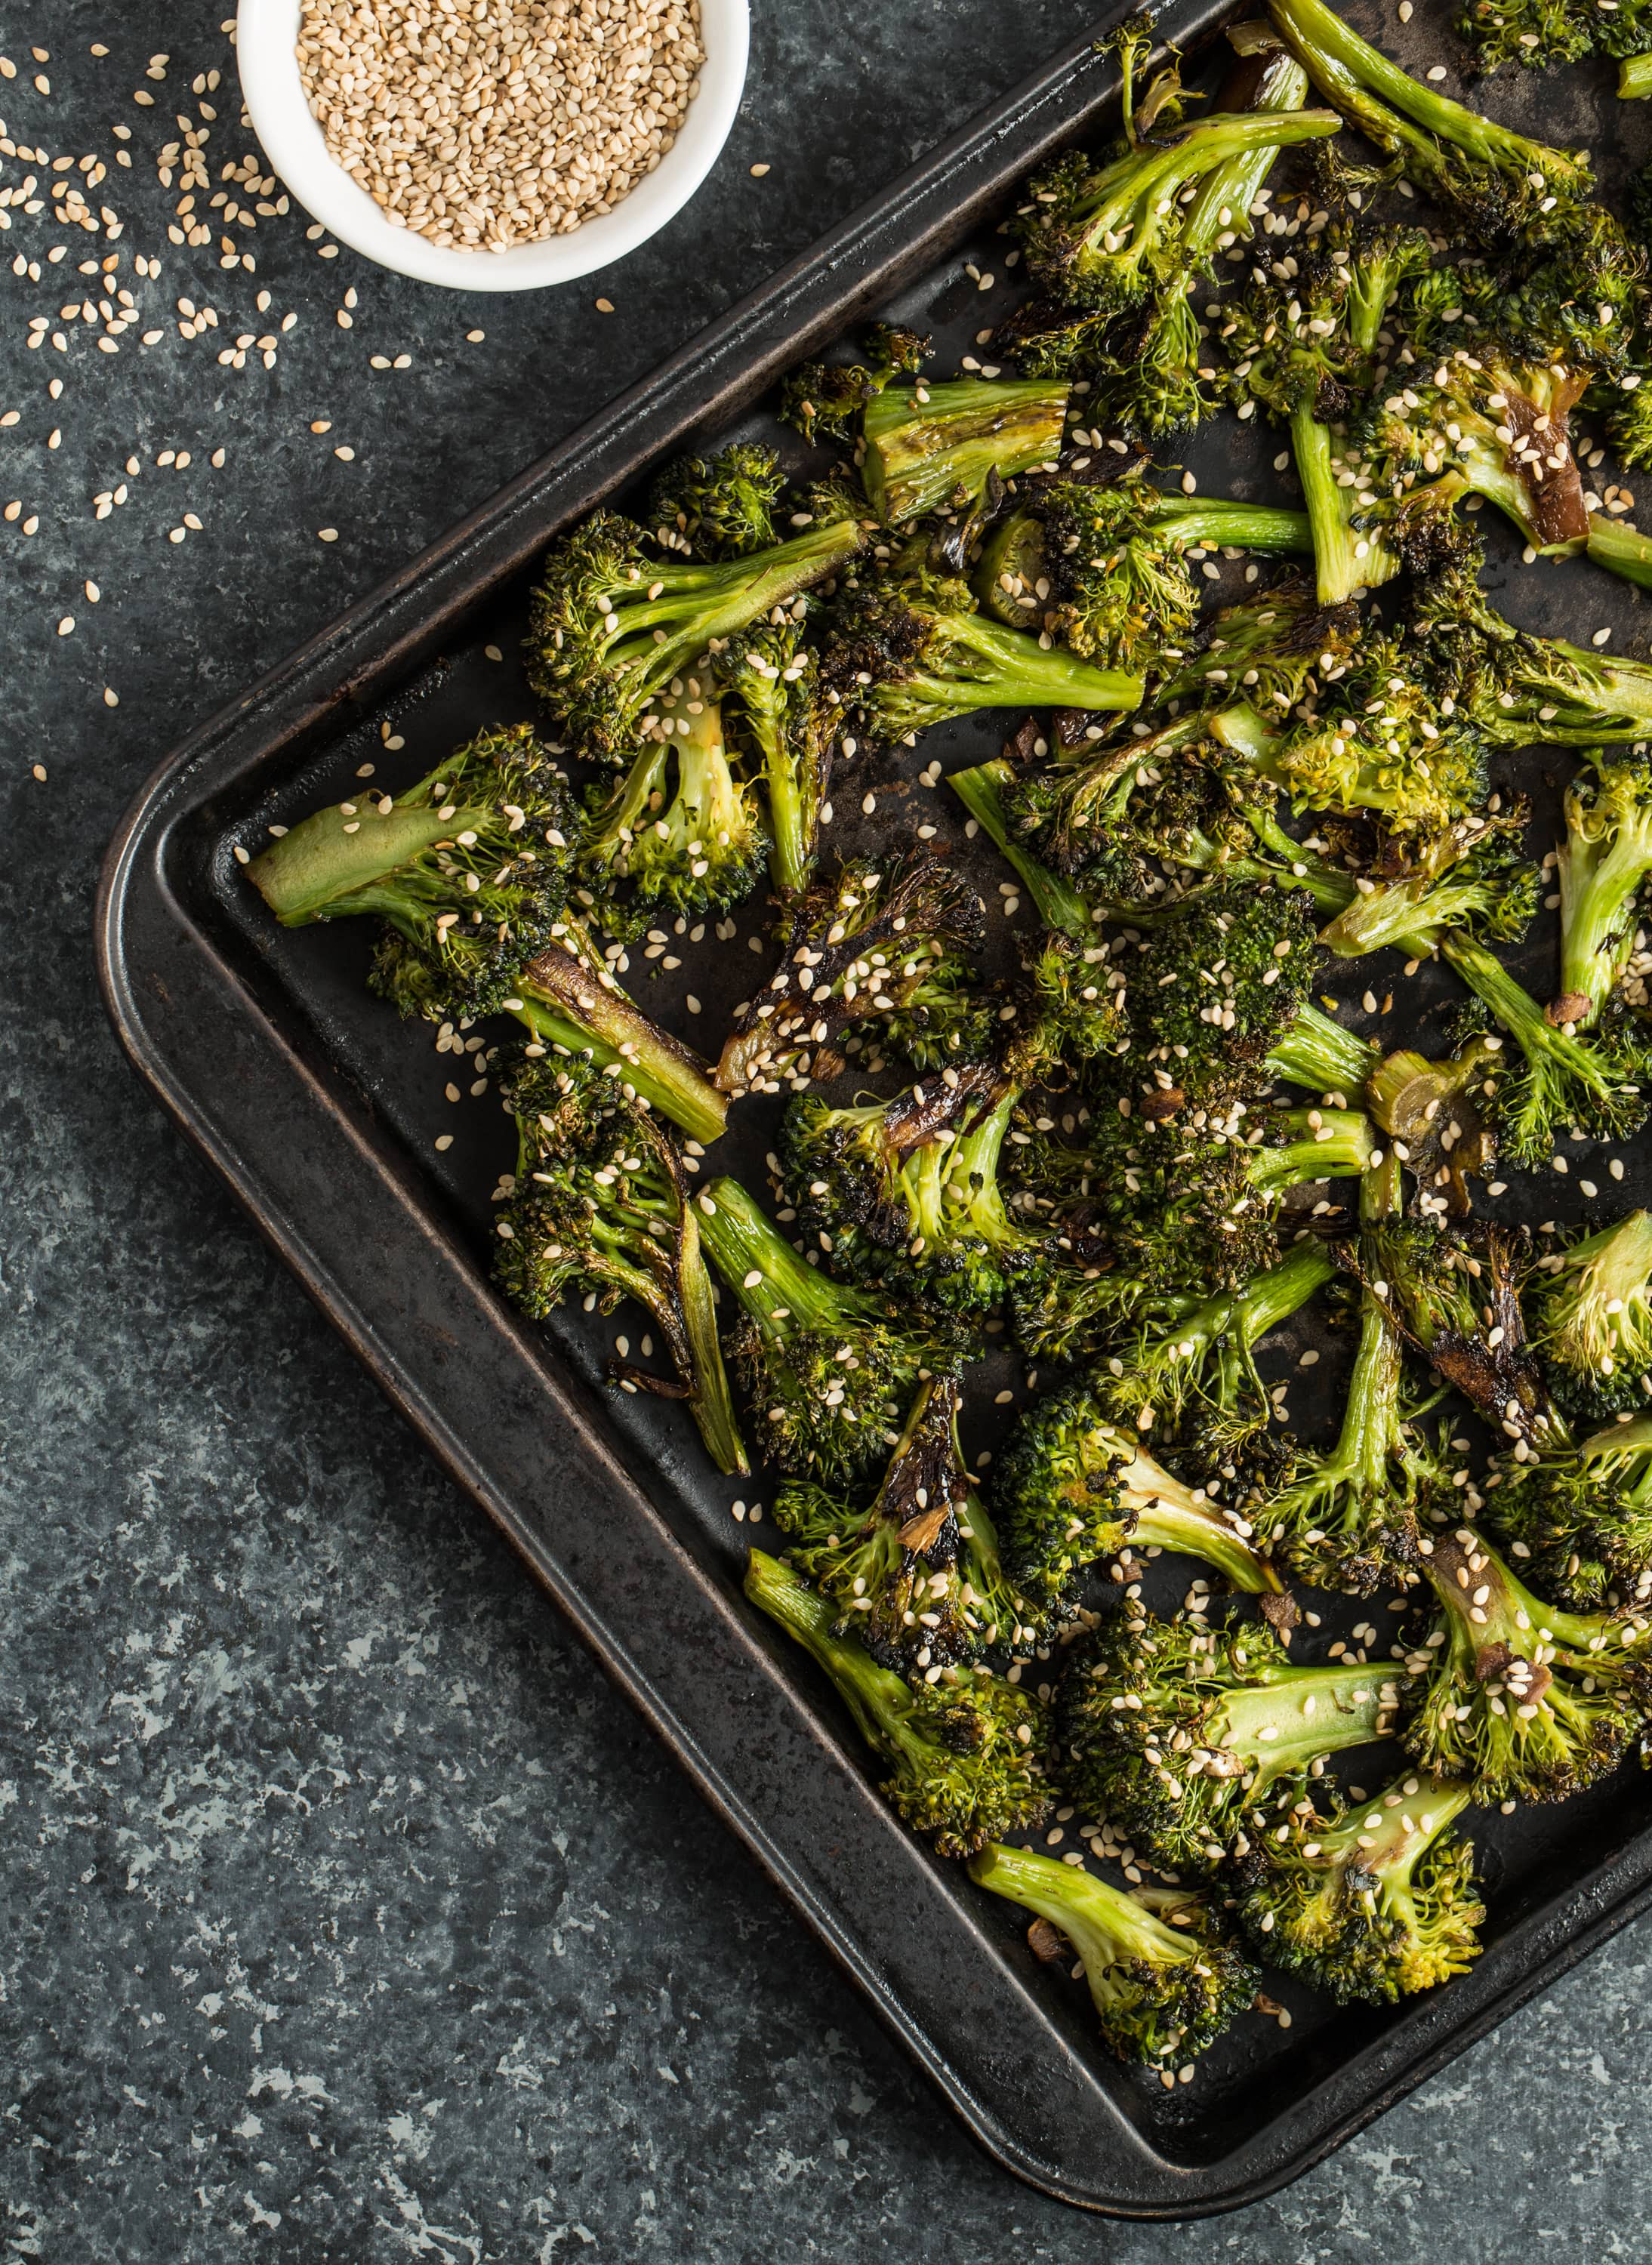 8 Small Ways to Make Roasted Vegetables Taste Even Better